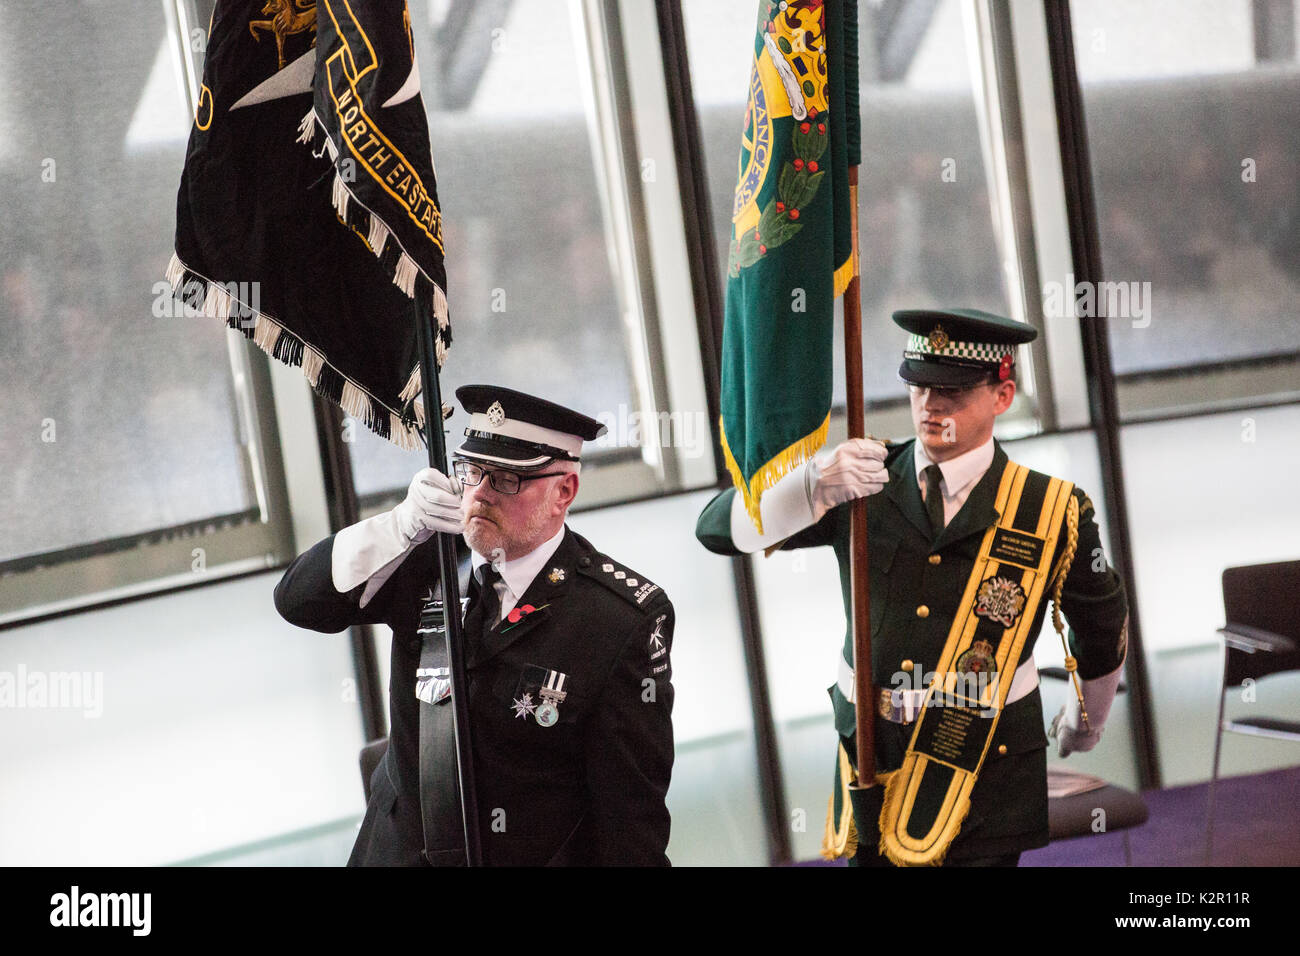 London, UK. 10th Nov, 2017. Standard bearers leave the Annual Service of Remembrance at City Hall, which was attended by Mayor of London Sadiq Khan with Jennette Arnold OBE AM, Chair of the London Assembly, Members of Parliament, London Assembly Members, Greater London Authority staff, representatives from London Government and public service organisations, and members of the Armed Forces, to commemorate those who served and lost their lives in the two world wars and other conflicts. Credit: Mark Kerrison/Alamy Live News - Stock Image